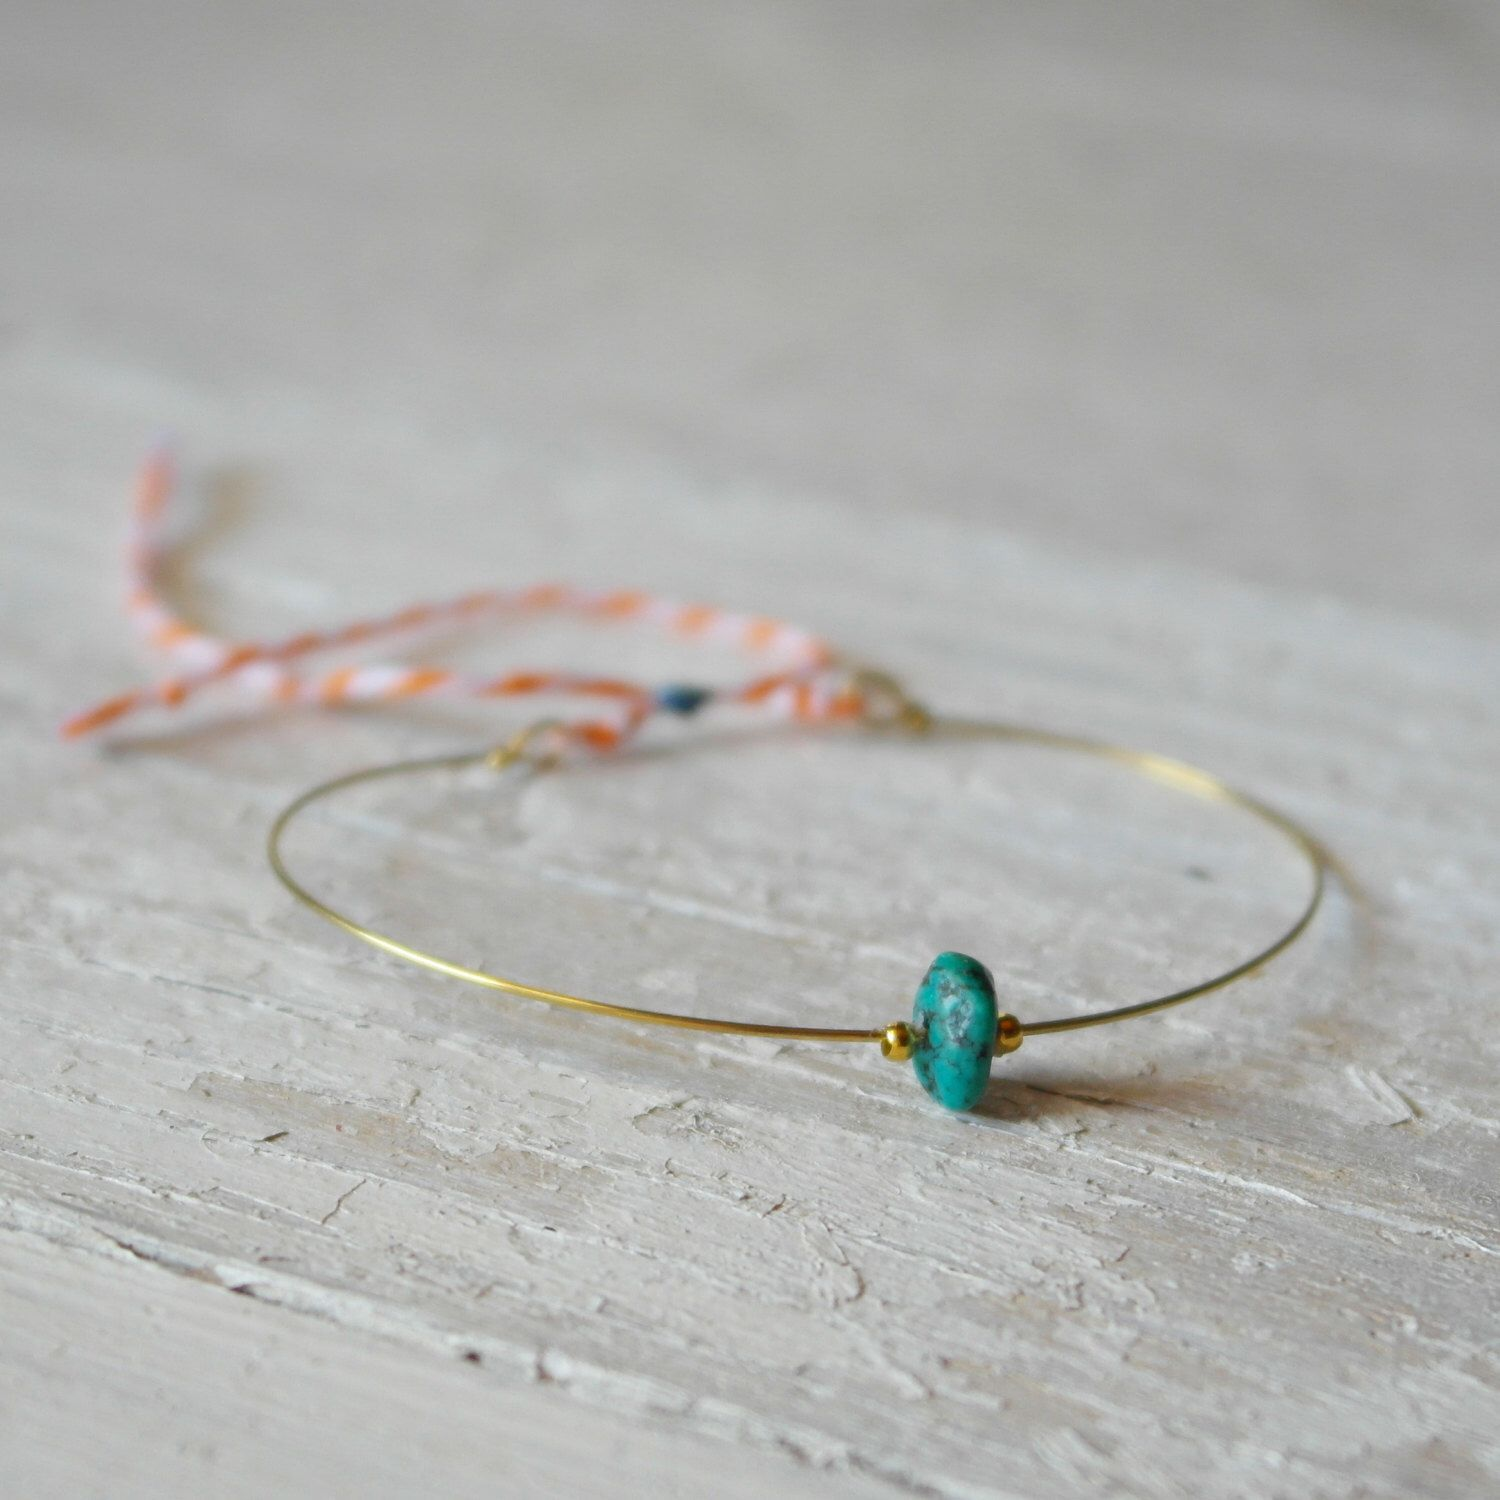 Tiny little friendship bracelet brass adjustable with an irregular green turquoise - AME by AMEjewels on Etsy https://www.etsy.com/listing/230821203/tiny-little-friendship-bracelet-brass